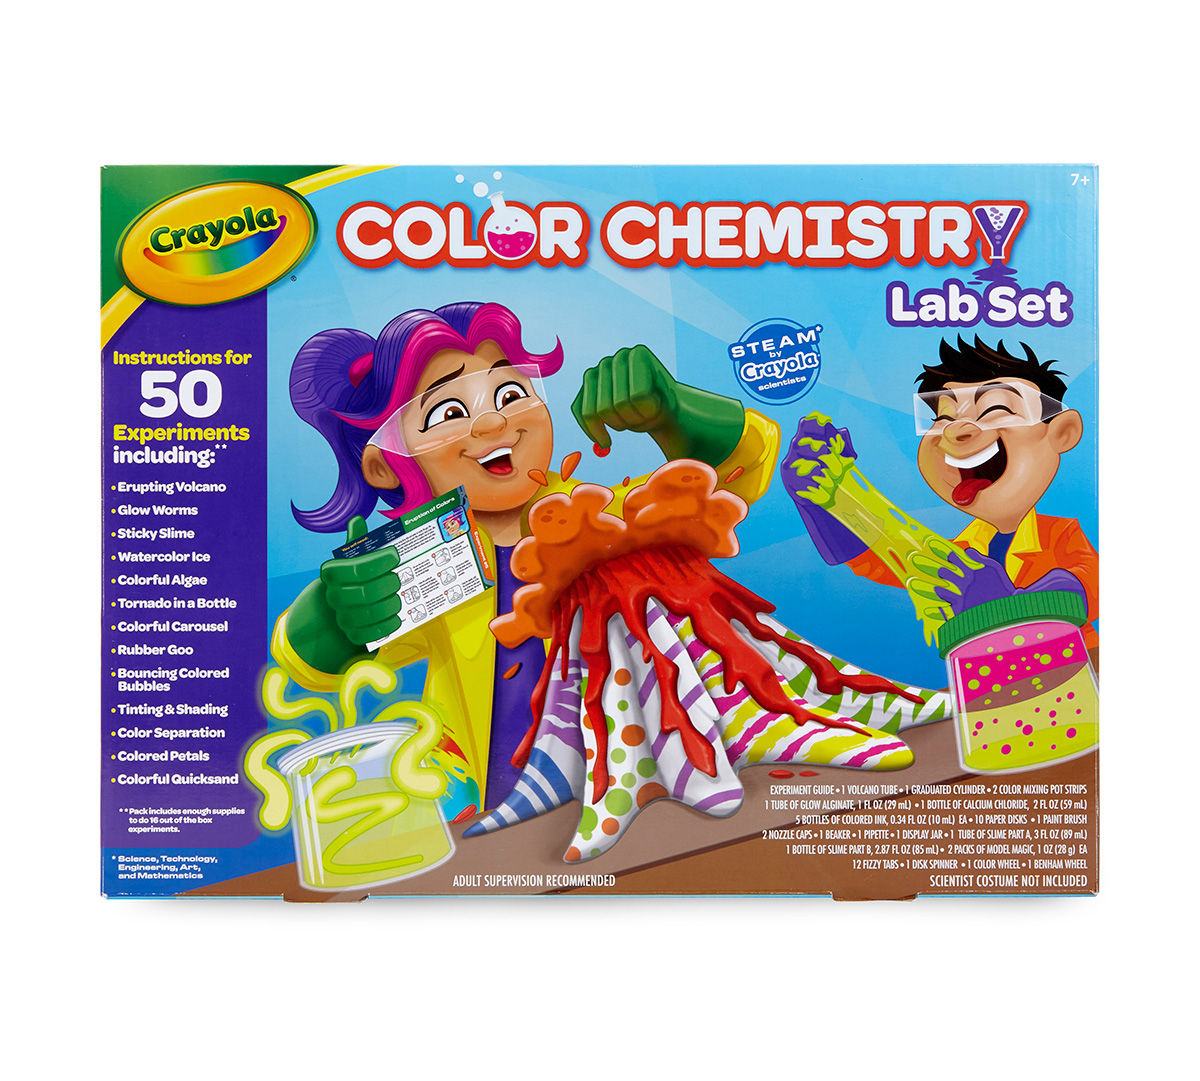 Crayola Color Chemistry Set for Kids, Over 50 STEAM/STEM Activities (16  with Included Supplies), Educational Toy, Gift | Crayola